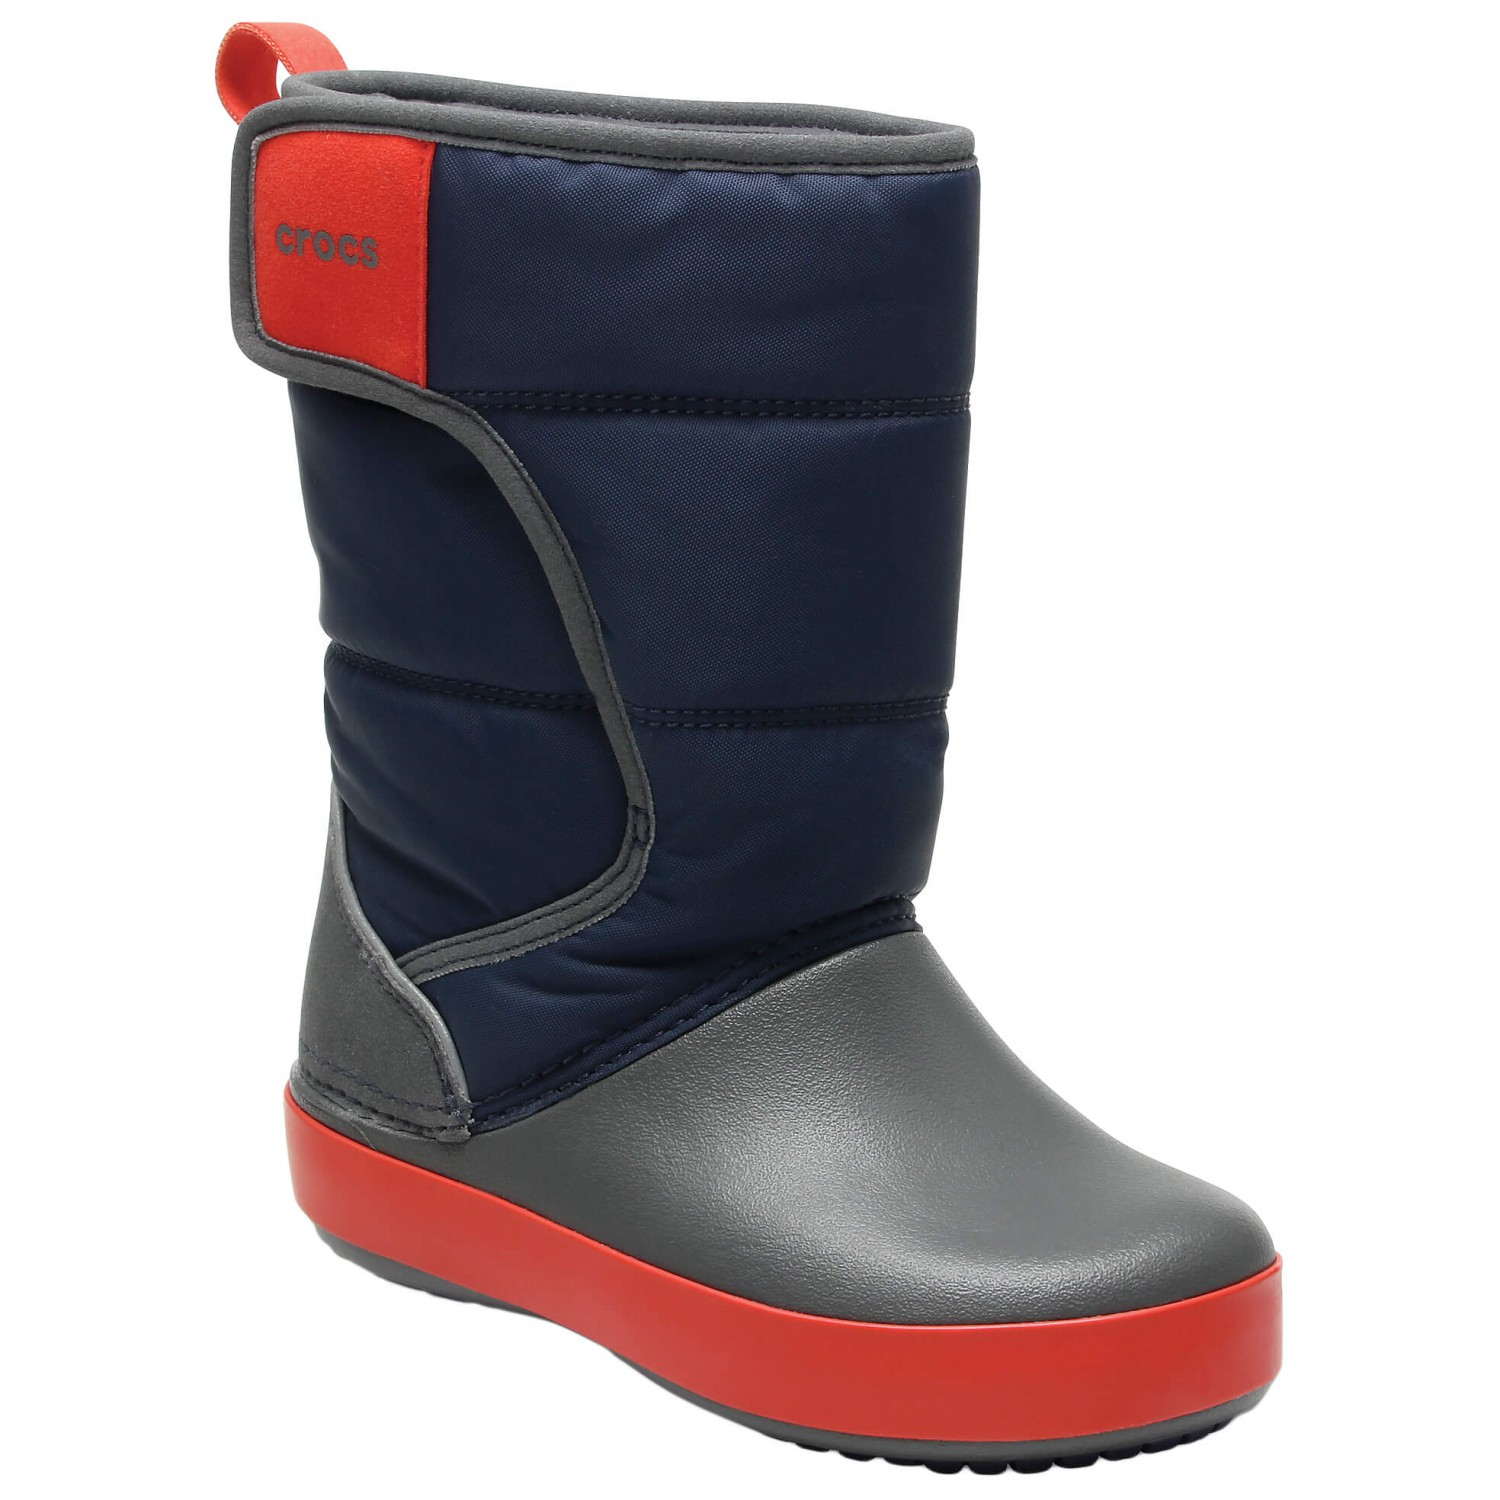 Crocs Kid's LodgePoint Snow Boot Winter boots Navy Slate Grey | C10 (US)